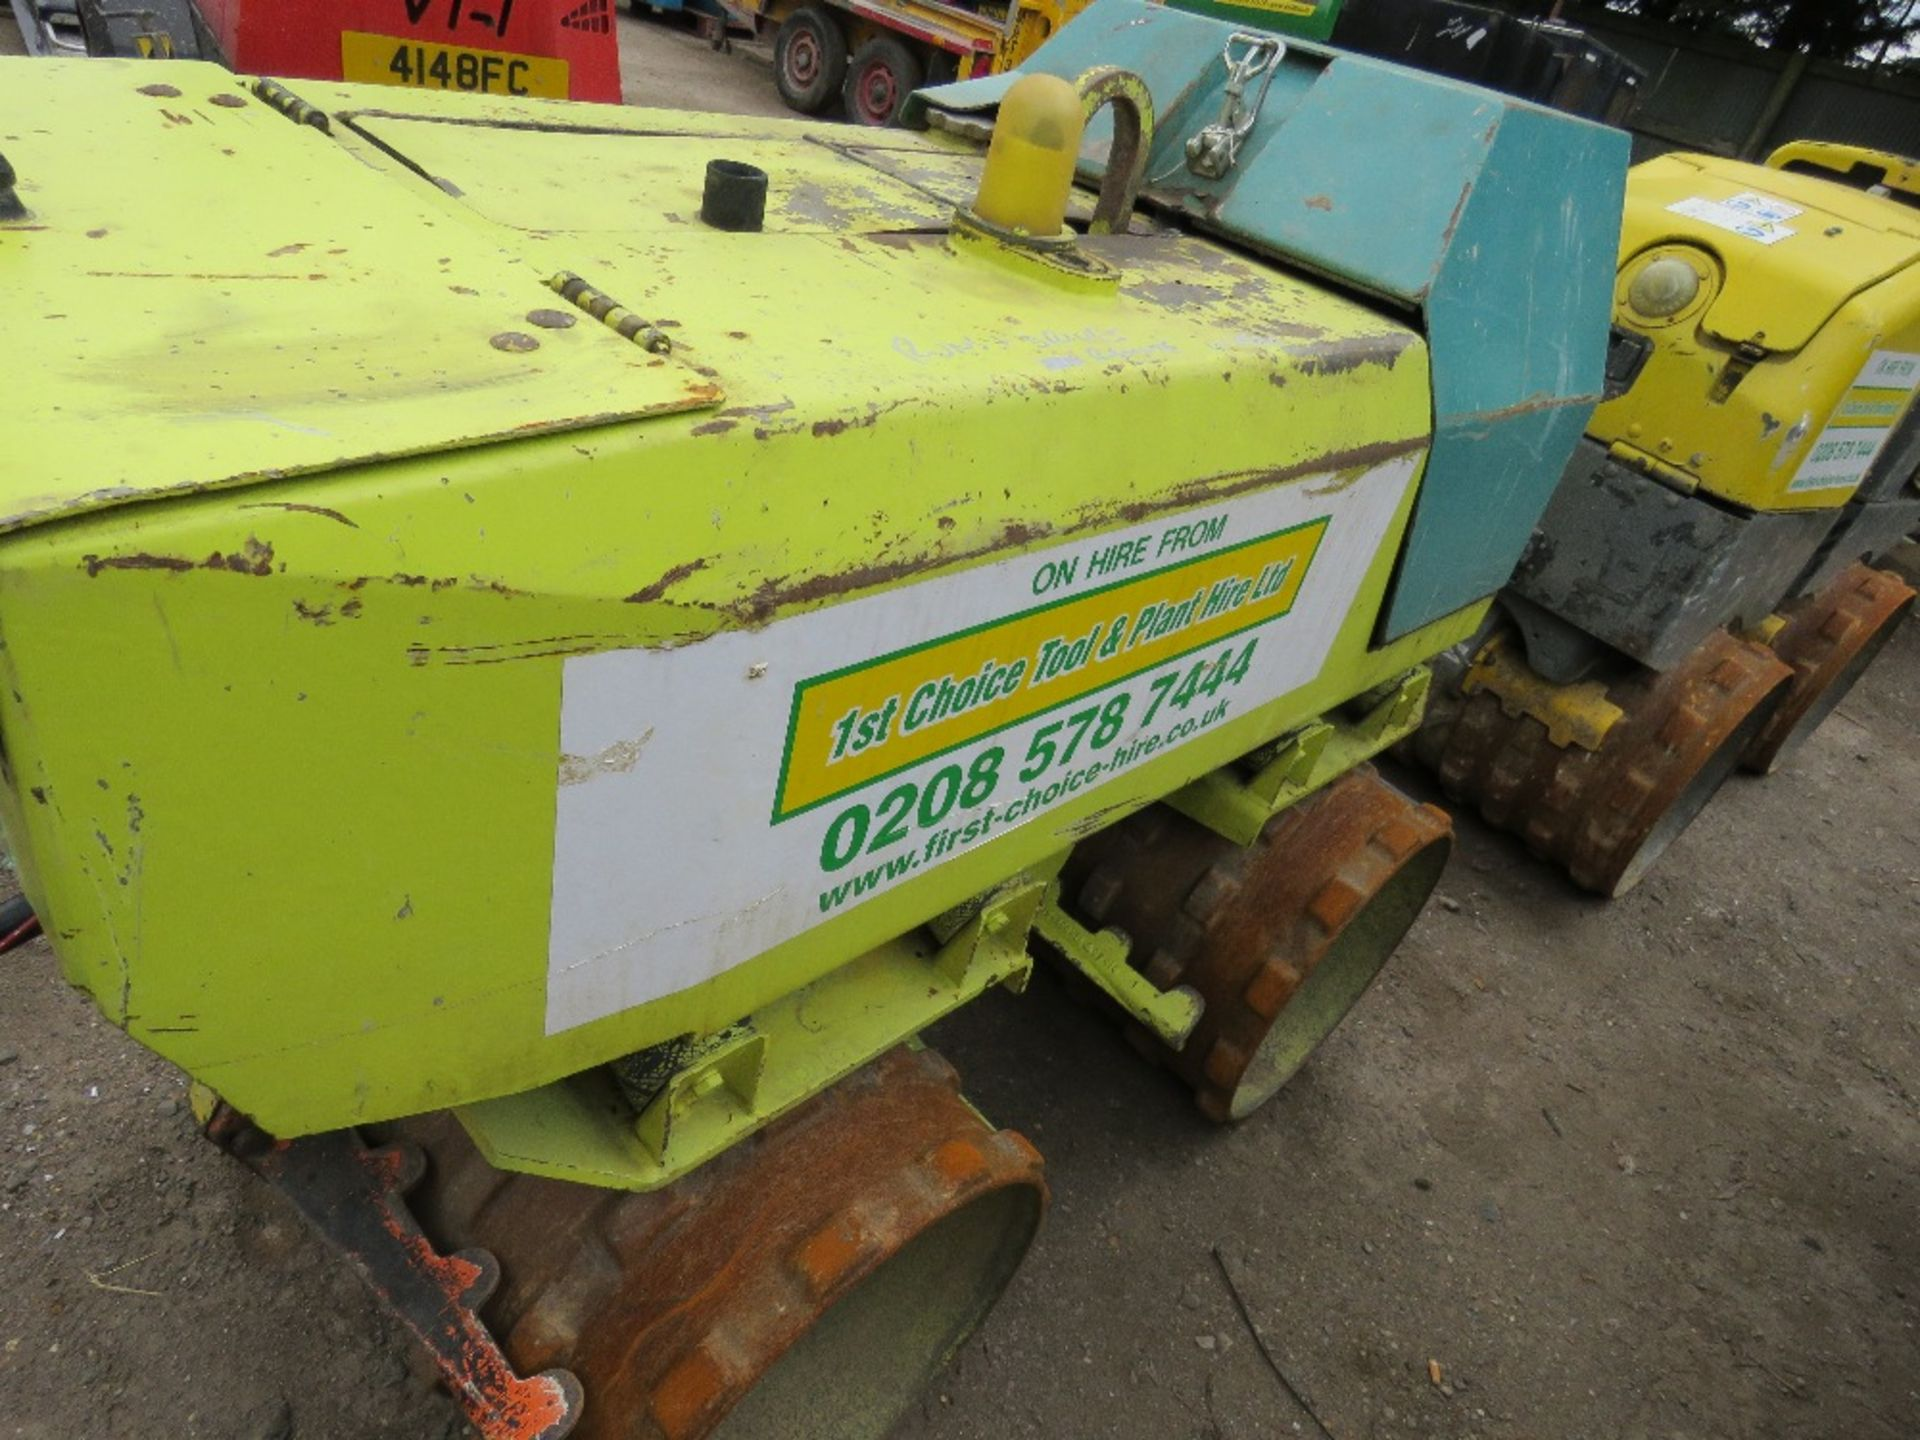 Lot 51 - RAMMAX AMMANN DOUBLE DRUM TRENCH ROLLER PN: 3008FC WHEN TESTED WAS SEEN TO DRIVE AND VIBE, REMOTE IN